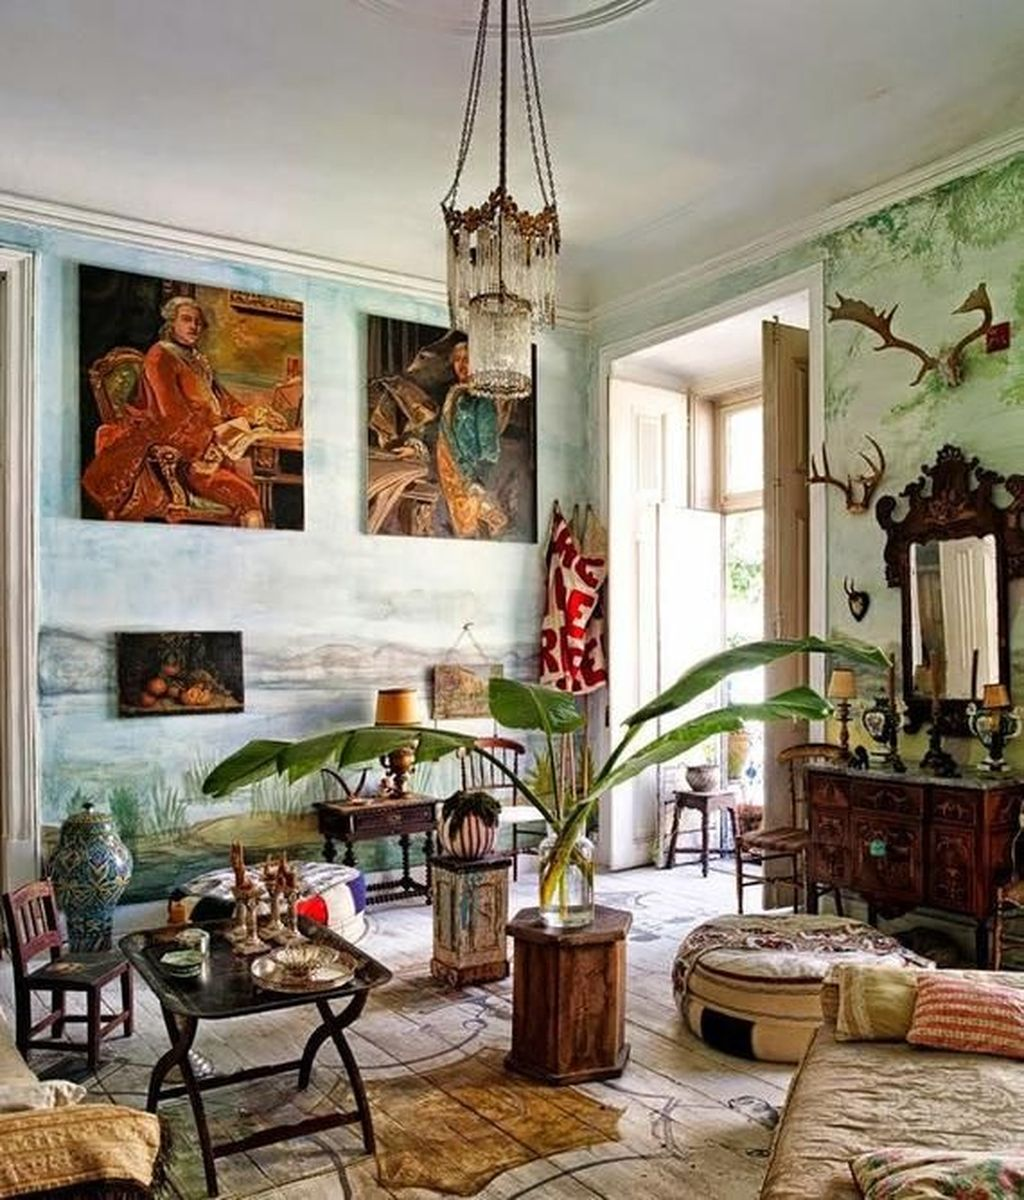 Best Summer Interior Design Ideas To Beautify Your Home 27